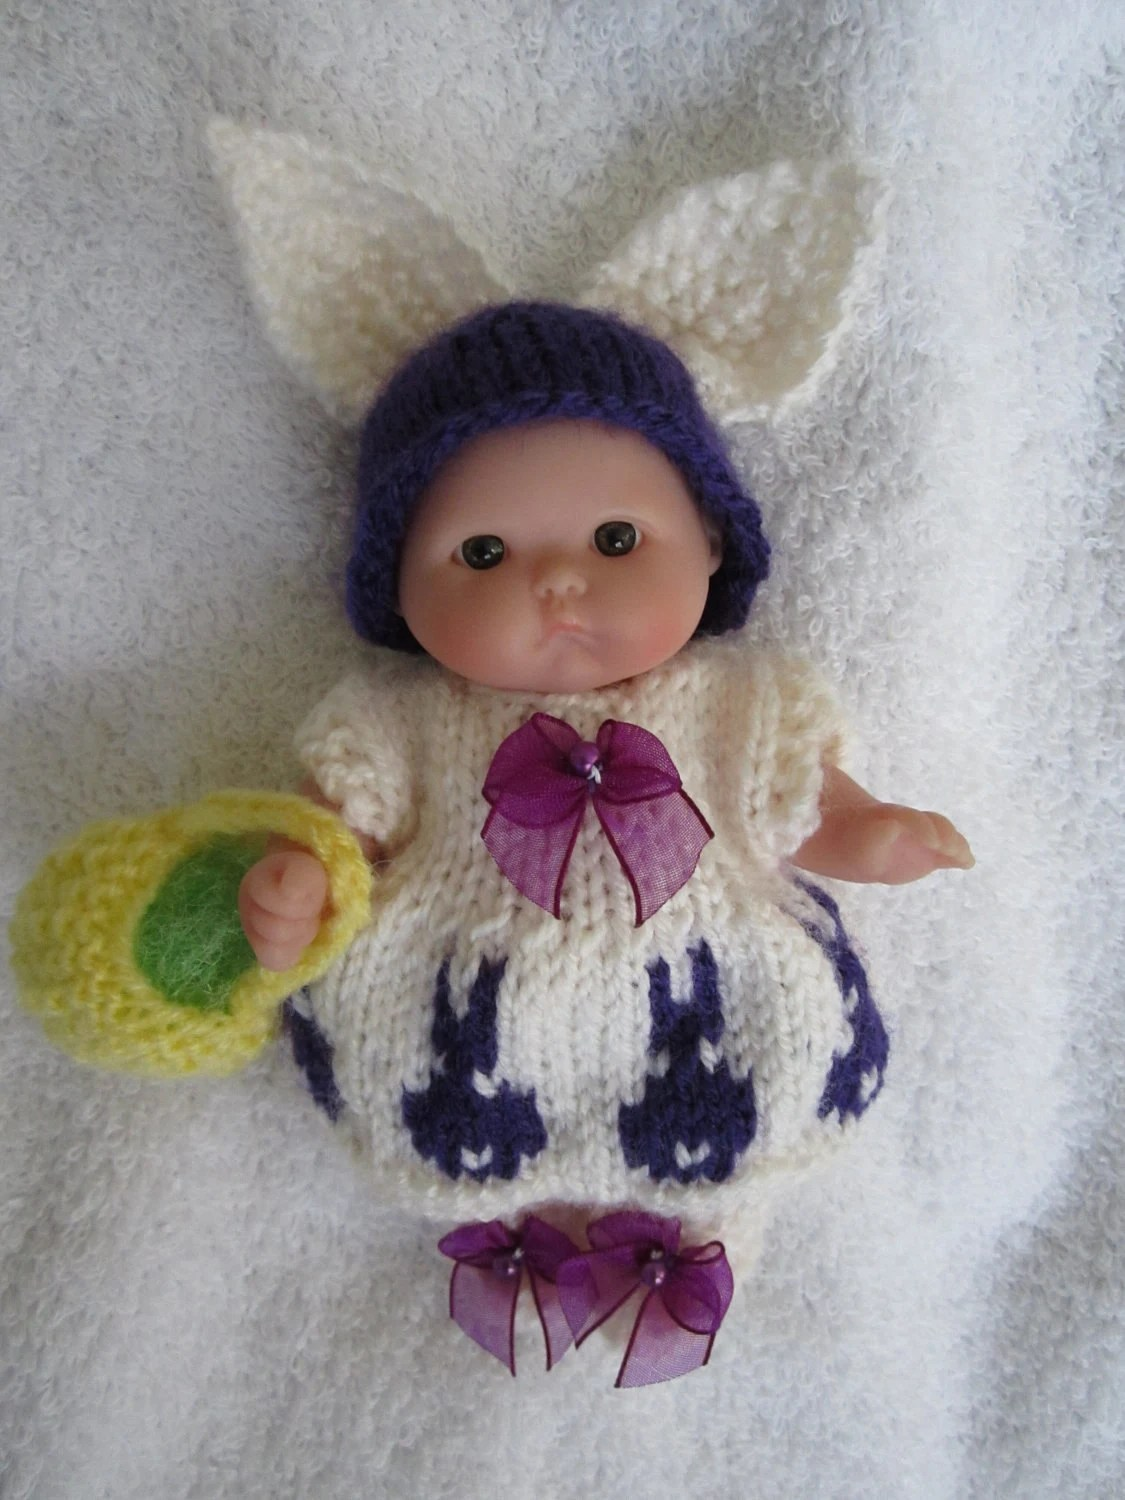 Newborn Knitted Pram Suit Knit Doll Outfit Easter Bunny Suit With Easter Basket For 5